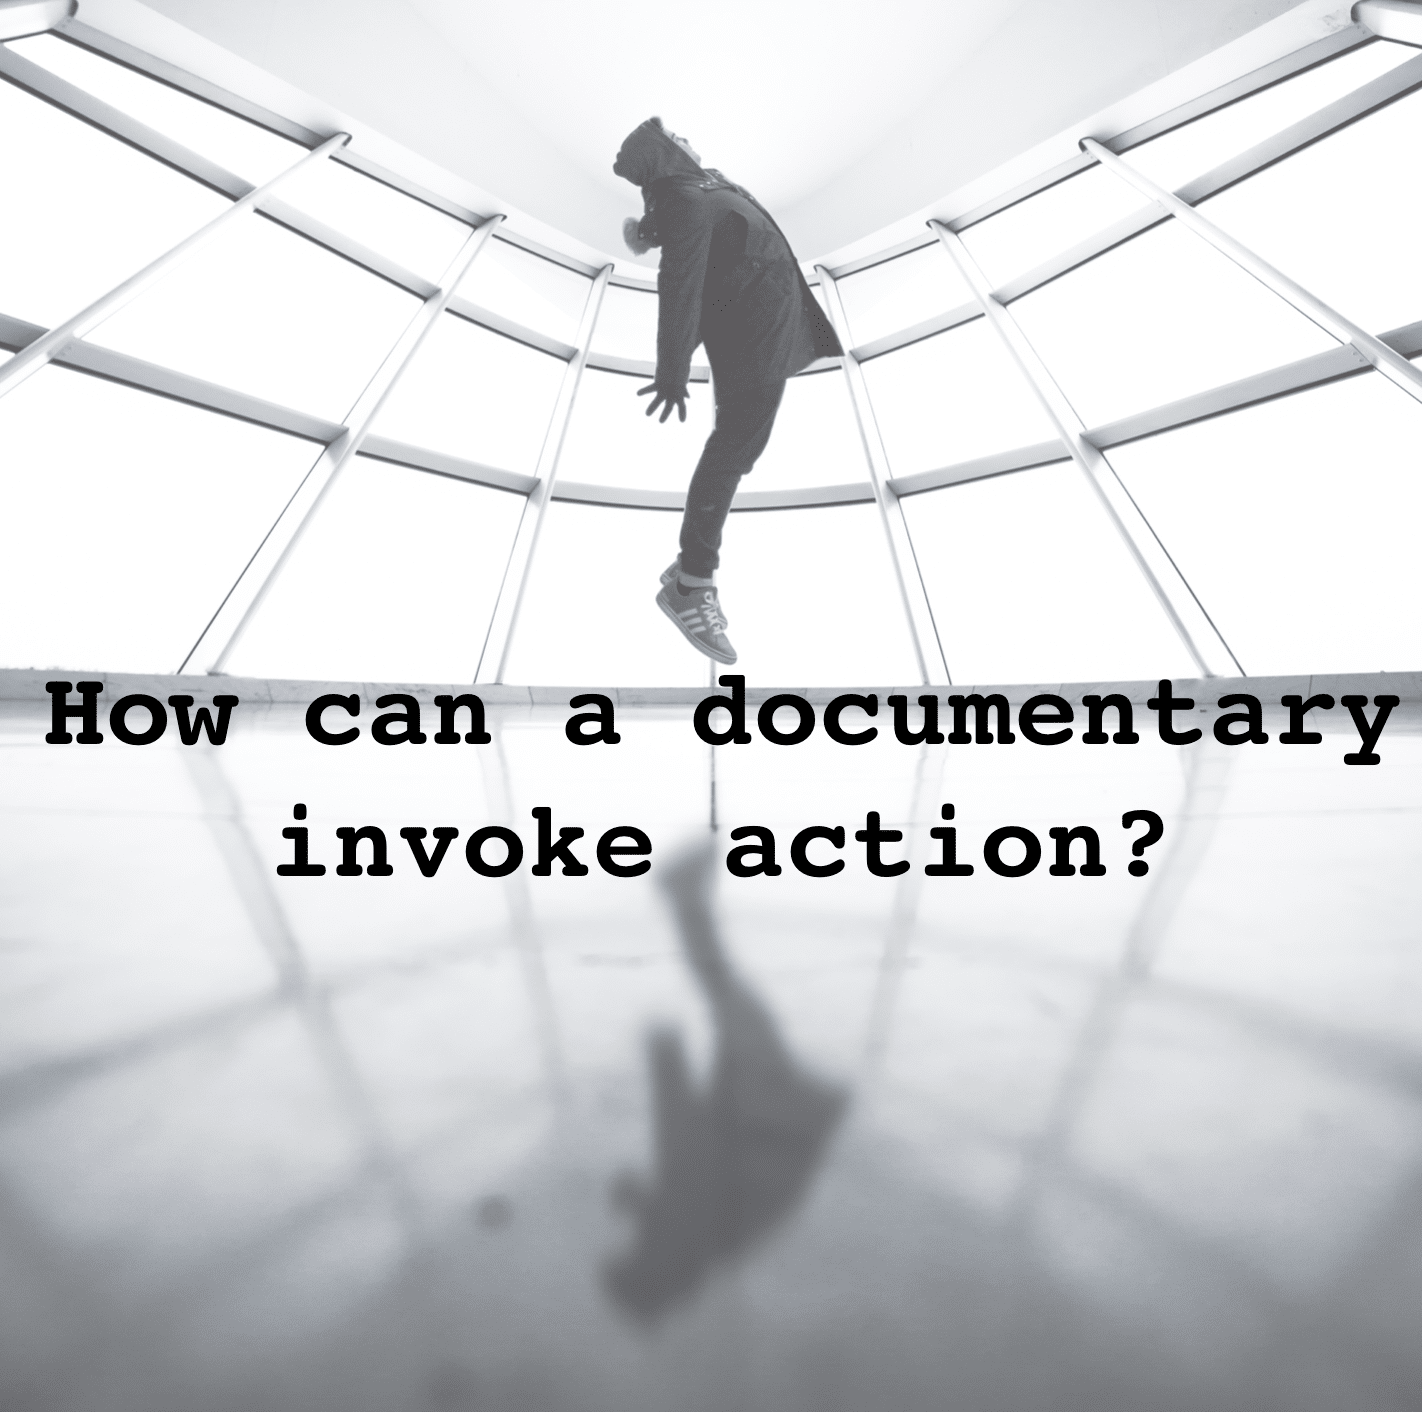 HOW DO YOU THINK a documentary can invoke action?